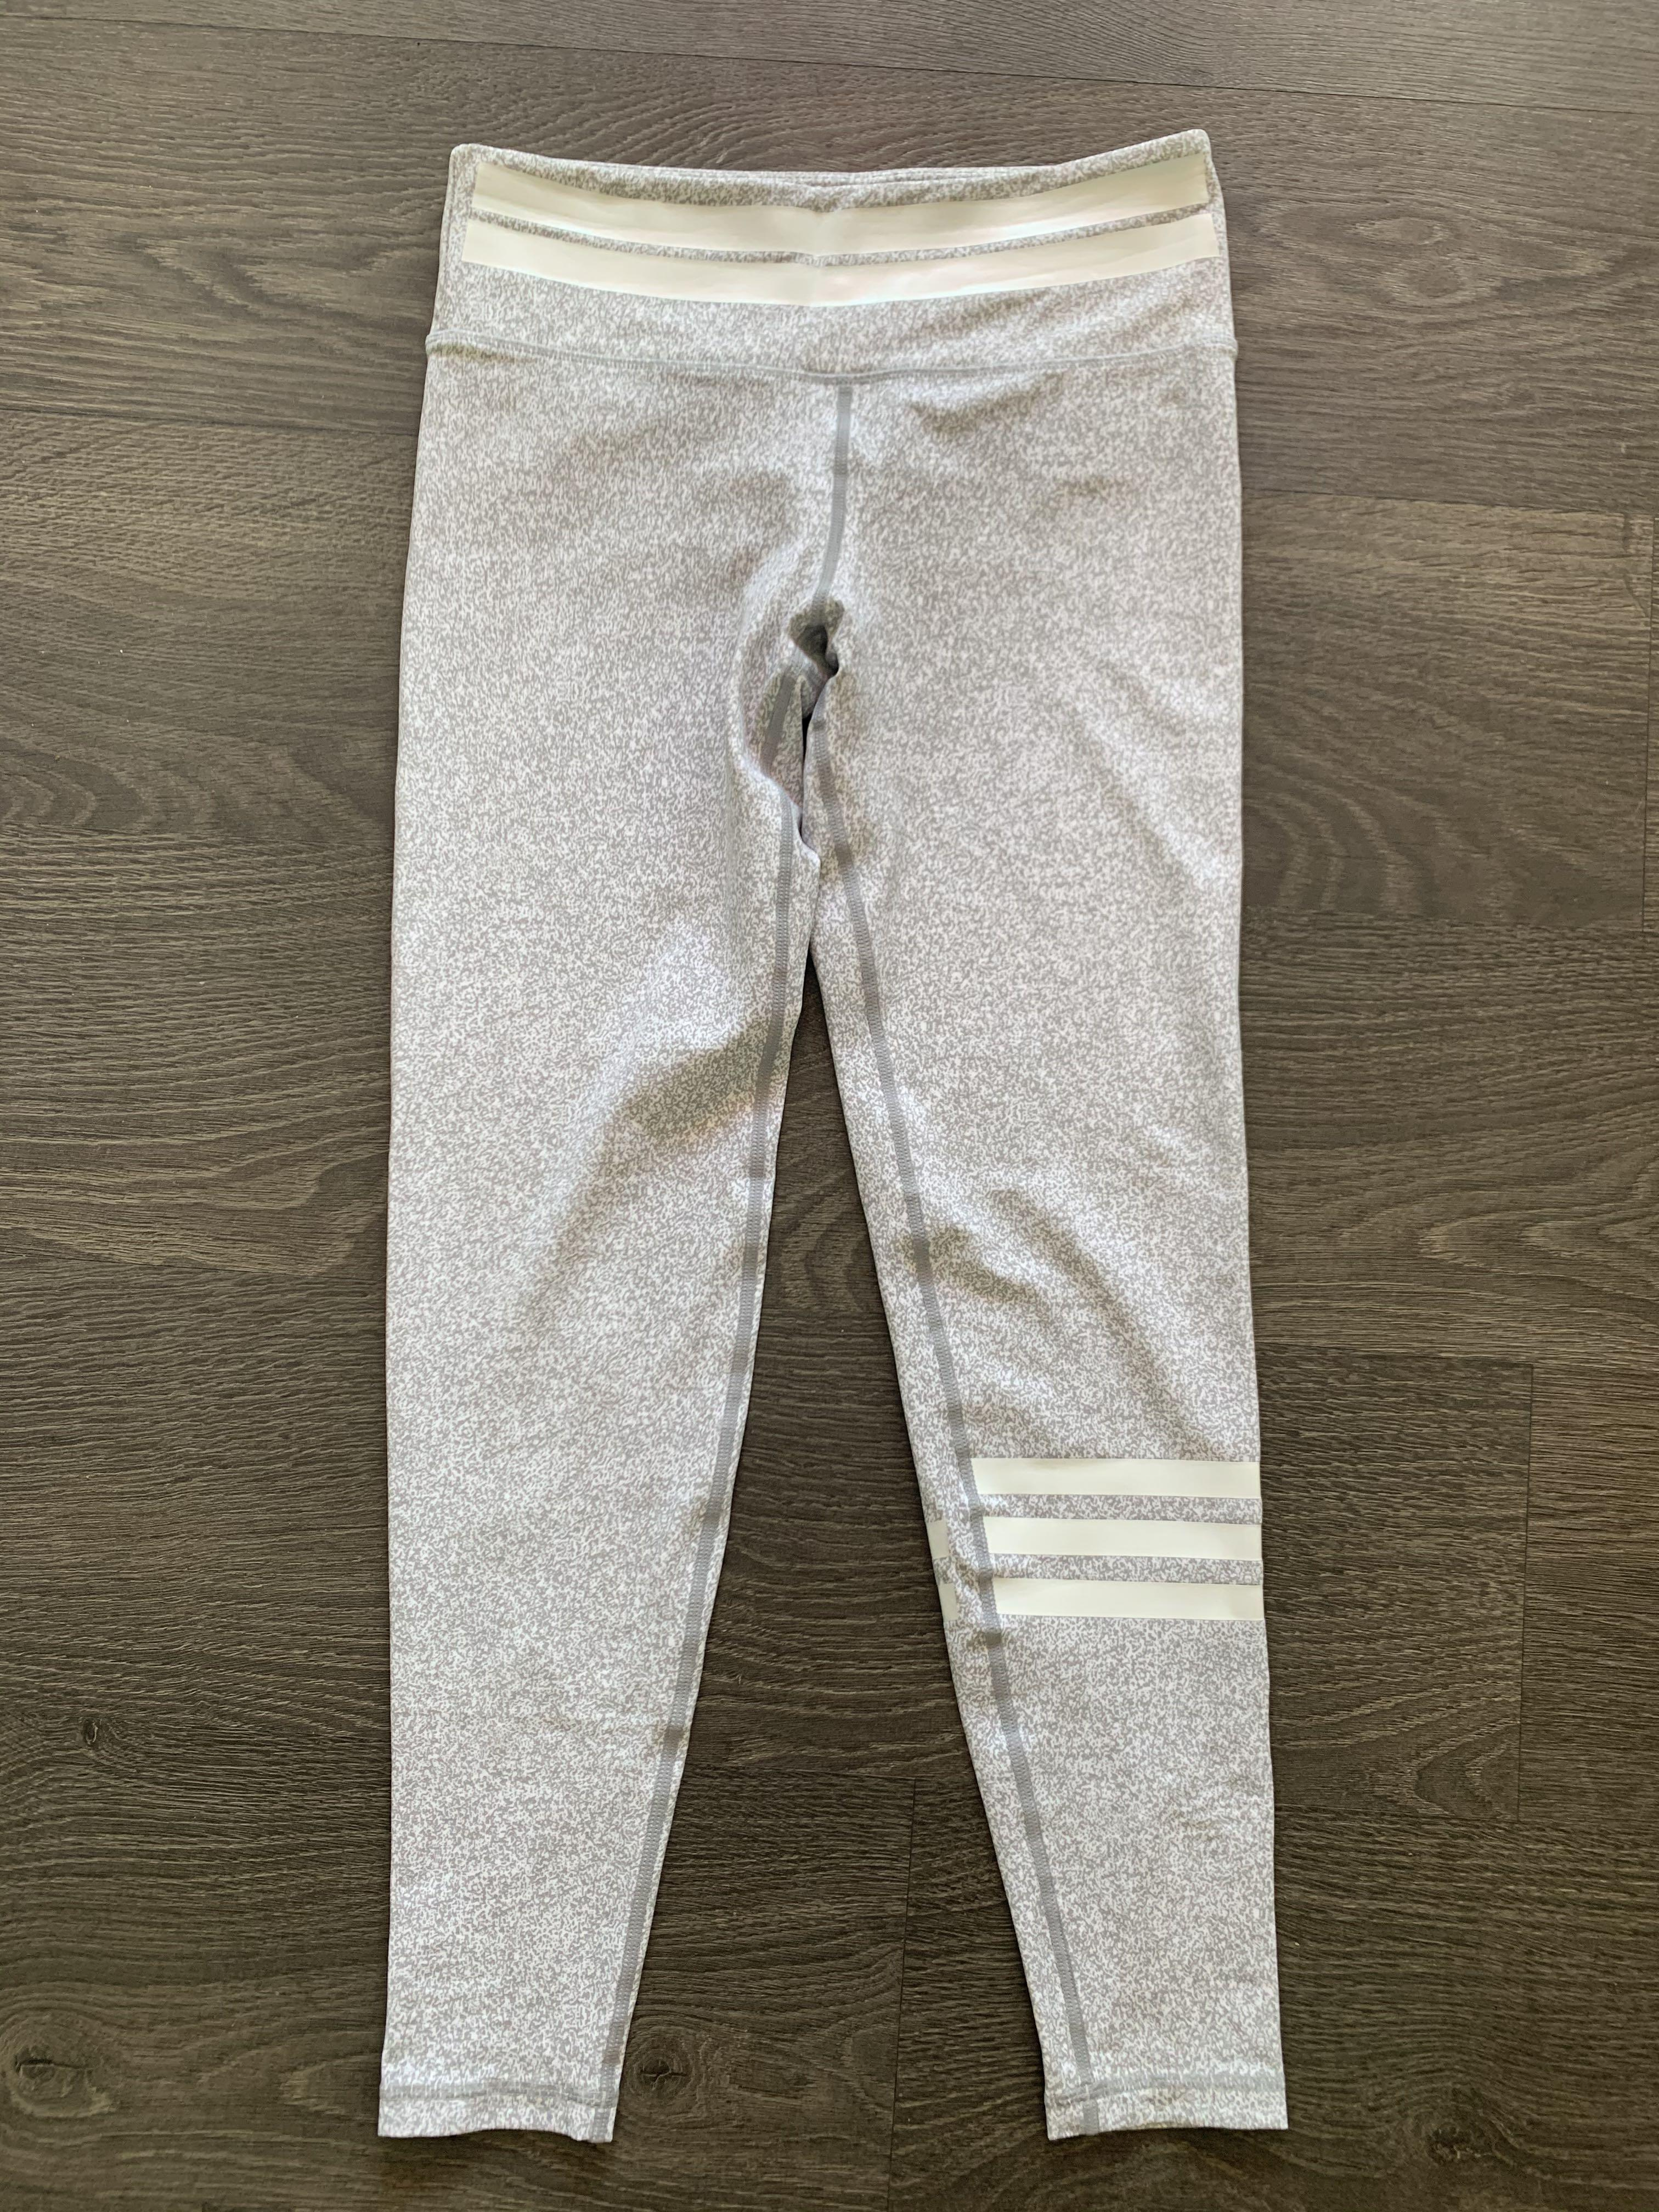 New with tags Lilybod Giselle White Eclipse Leggings size Medium